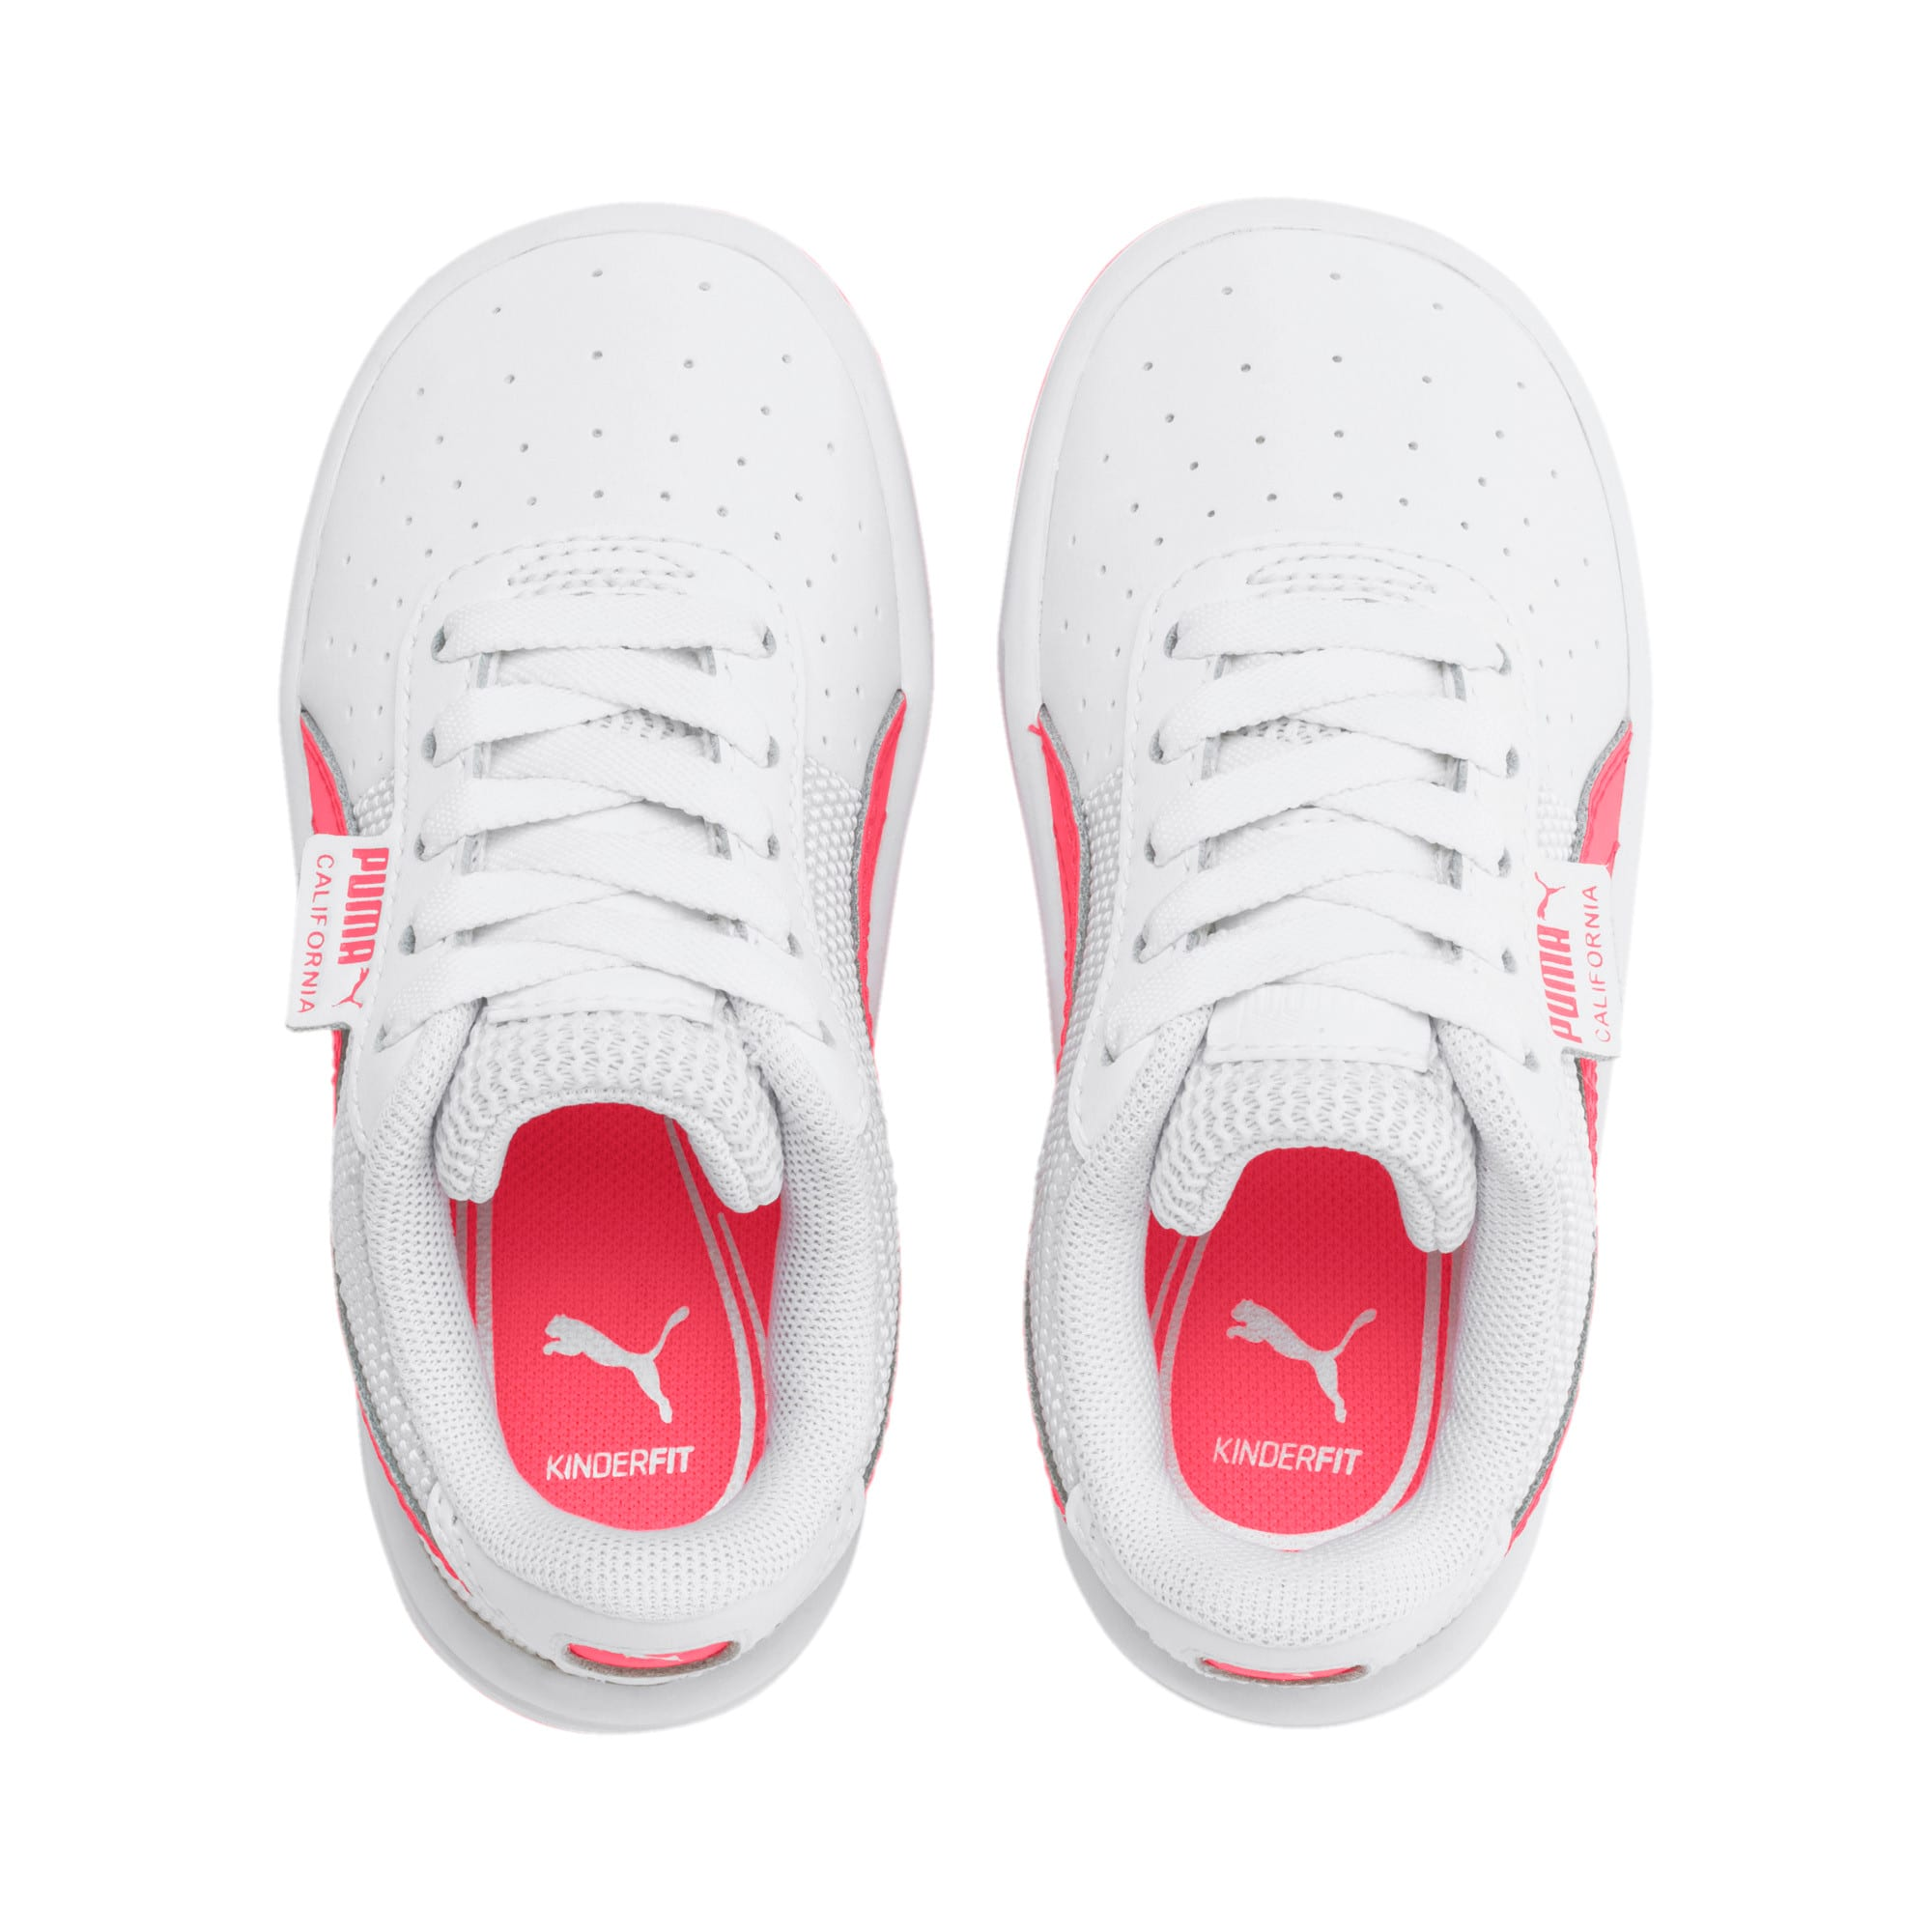 Thumbnail 6 of California Toddler Shoes, Puma White-Pink Alert, medium